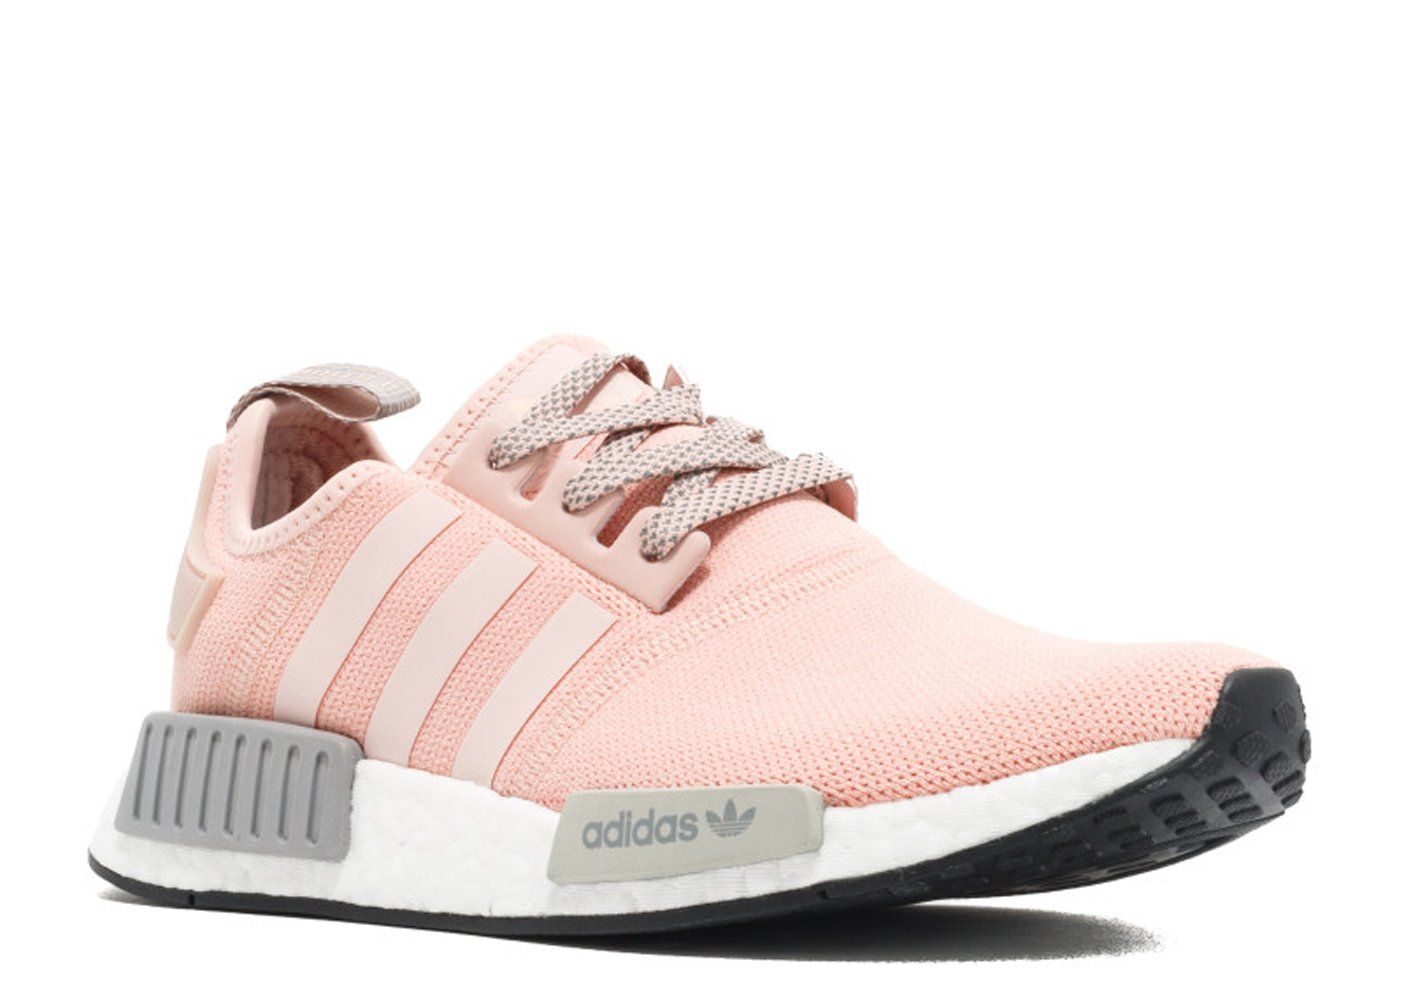 2e36d9ff958ce Adidas NMD R1 Womens Offspring BY3059 Vapour Pink Light Onix US 6 ...